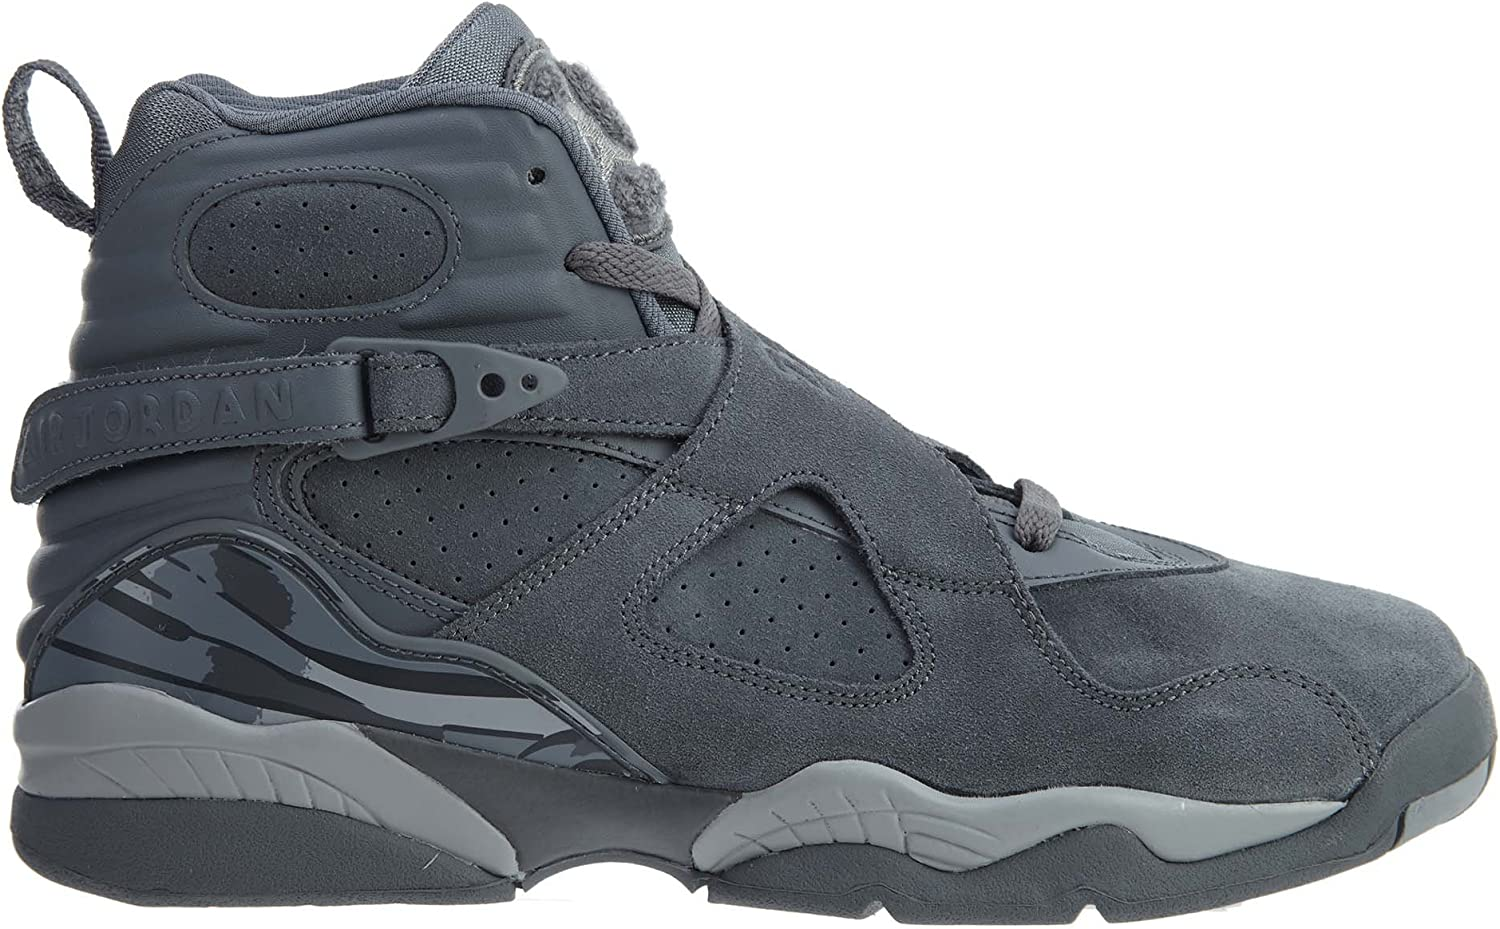 Air Jordan 8 Retro 'Cool Grey'